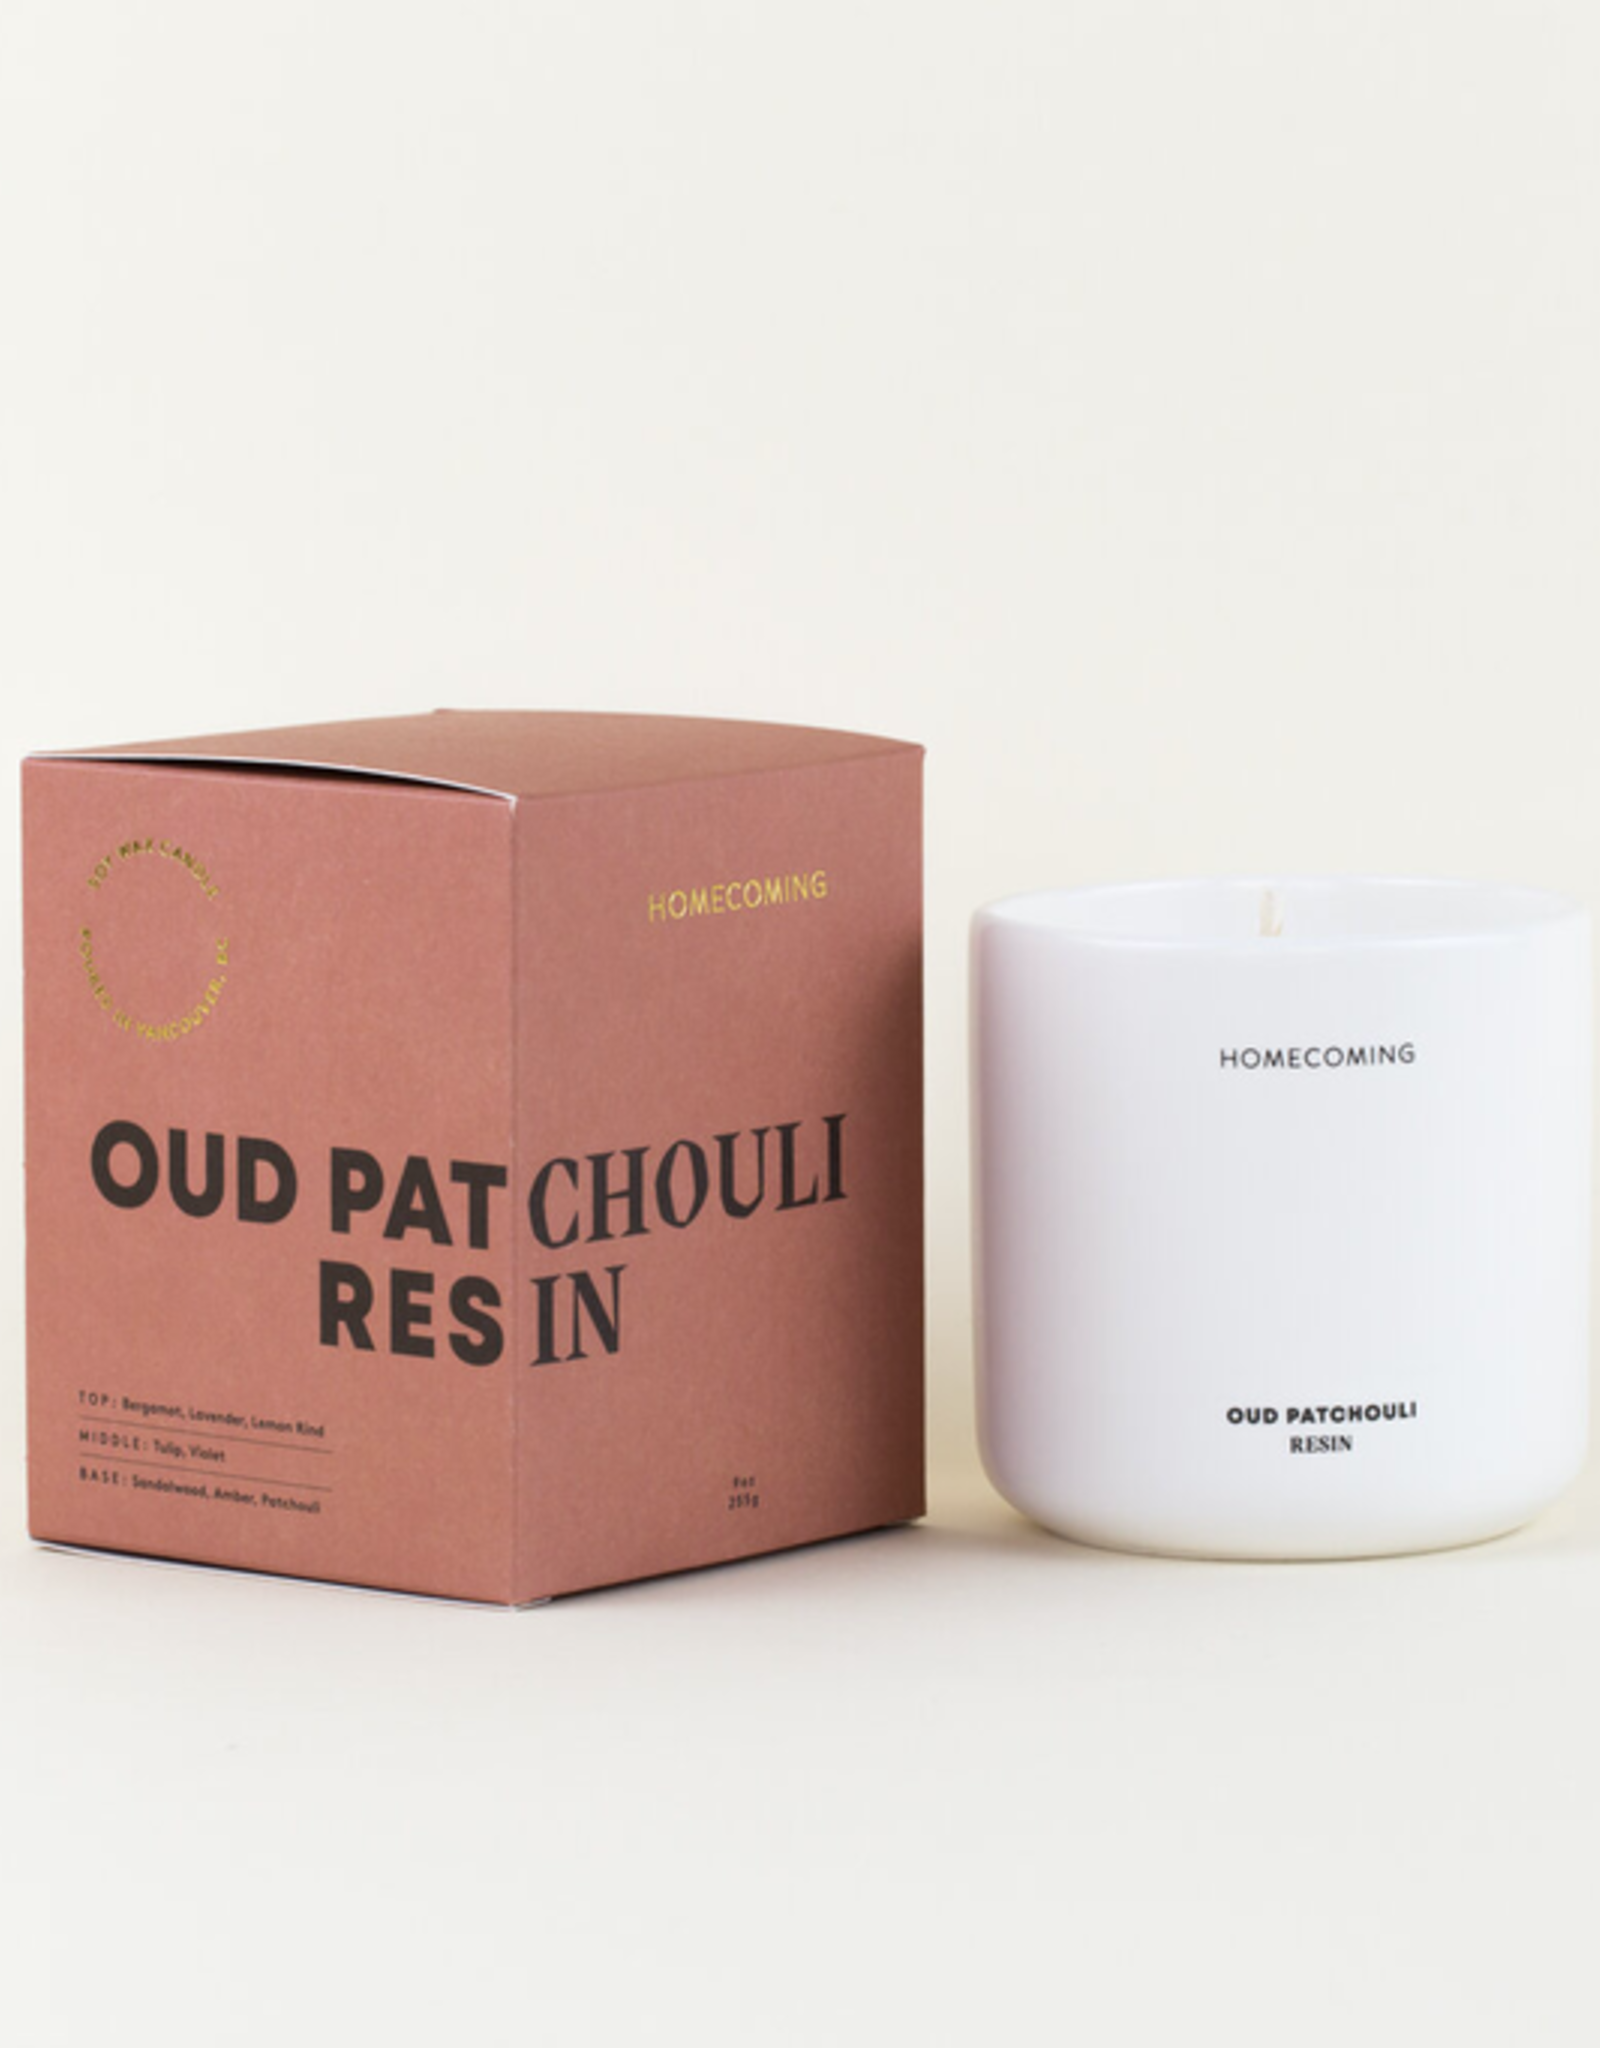 Homecoming Candles Homecoming Candles-Oud Patchoulii Resin Deluxe Ceramic Candle